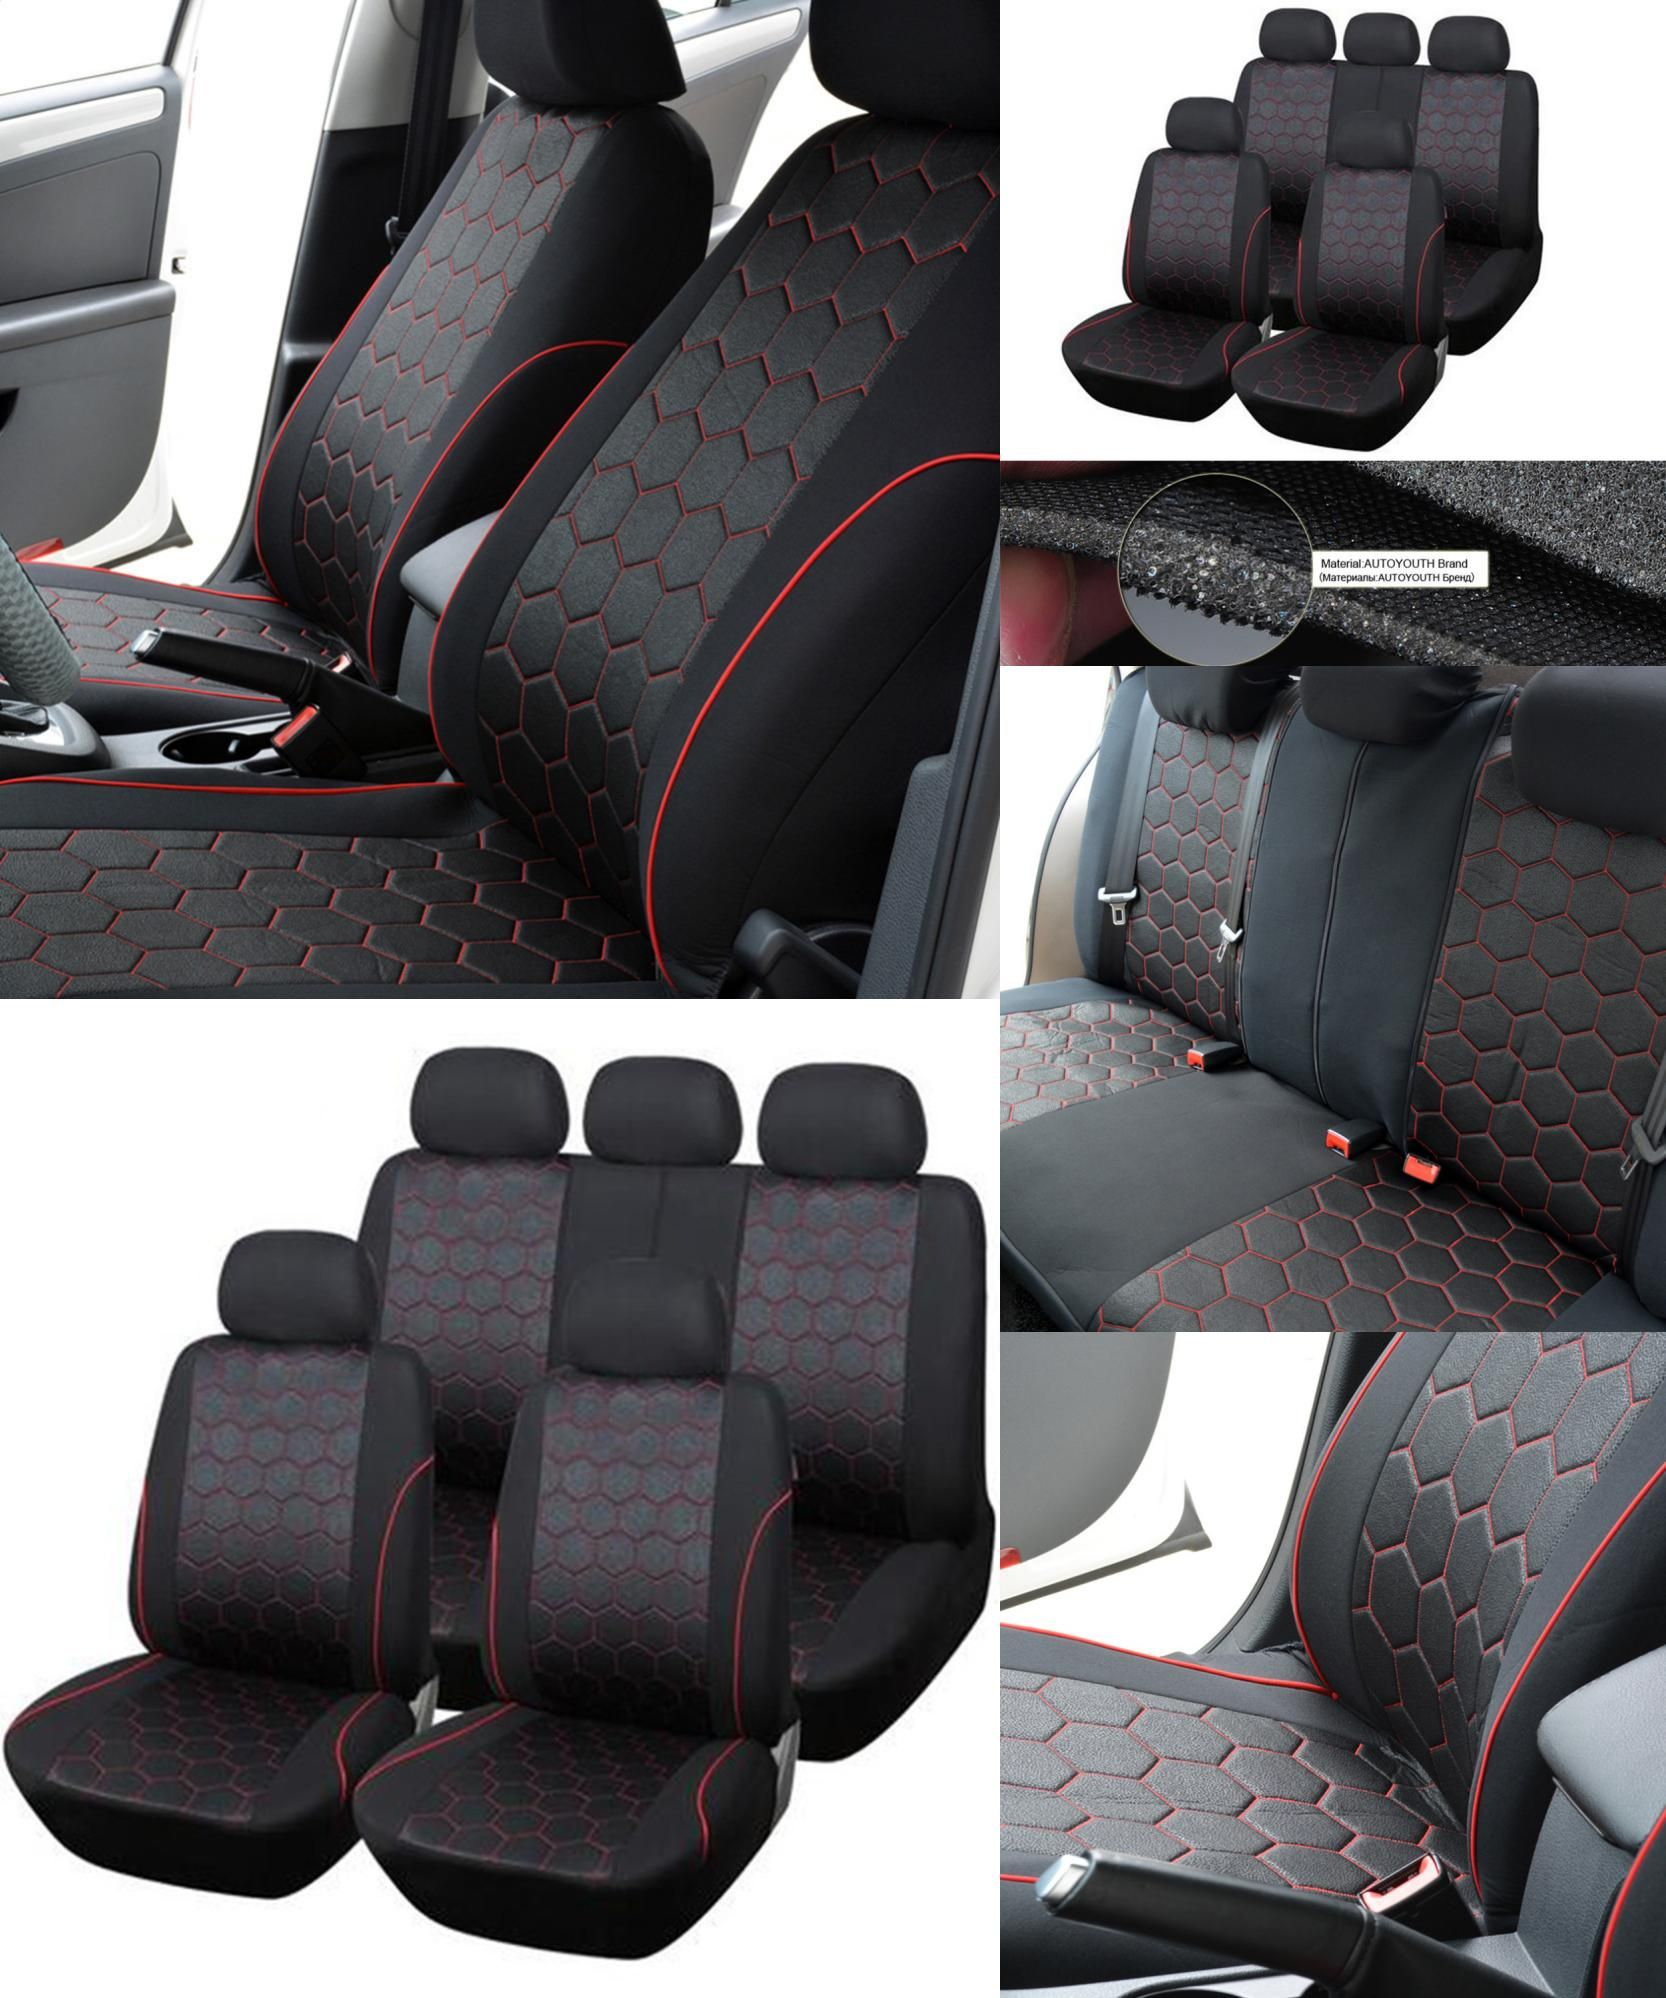 Visit to Buy] 1 Sets Hexagon Auto Car Seat Cover Car Accessories Car ...